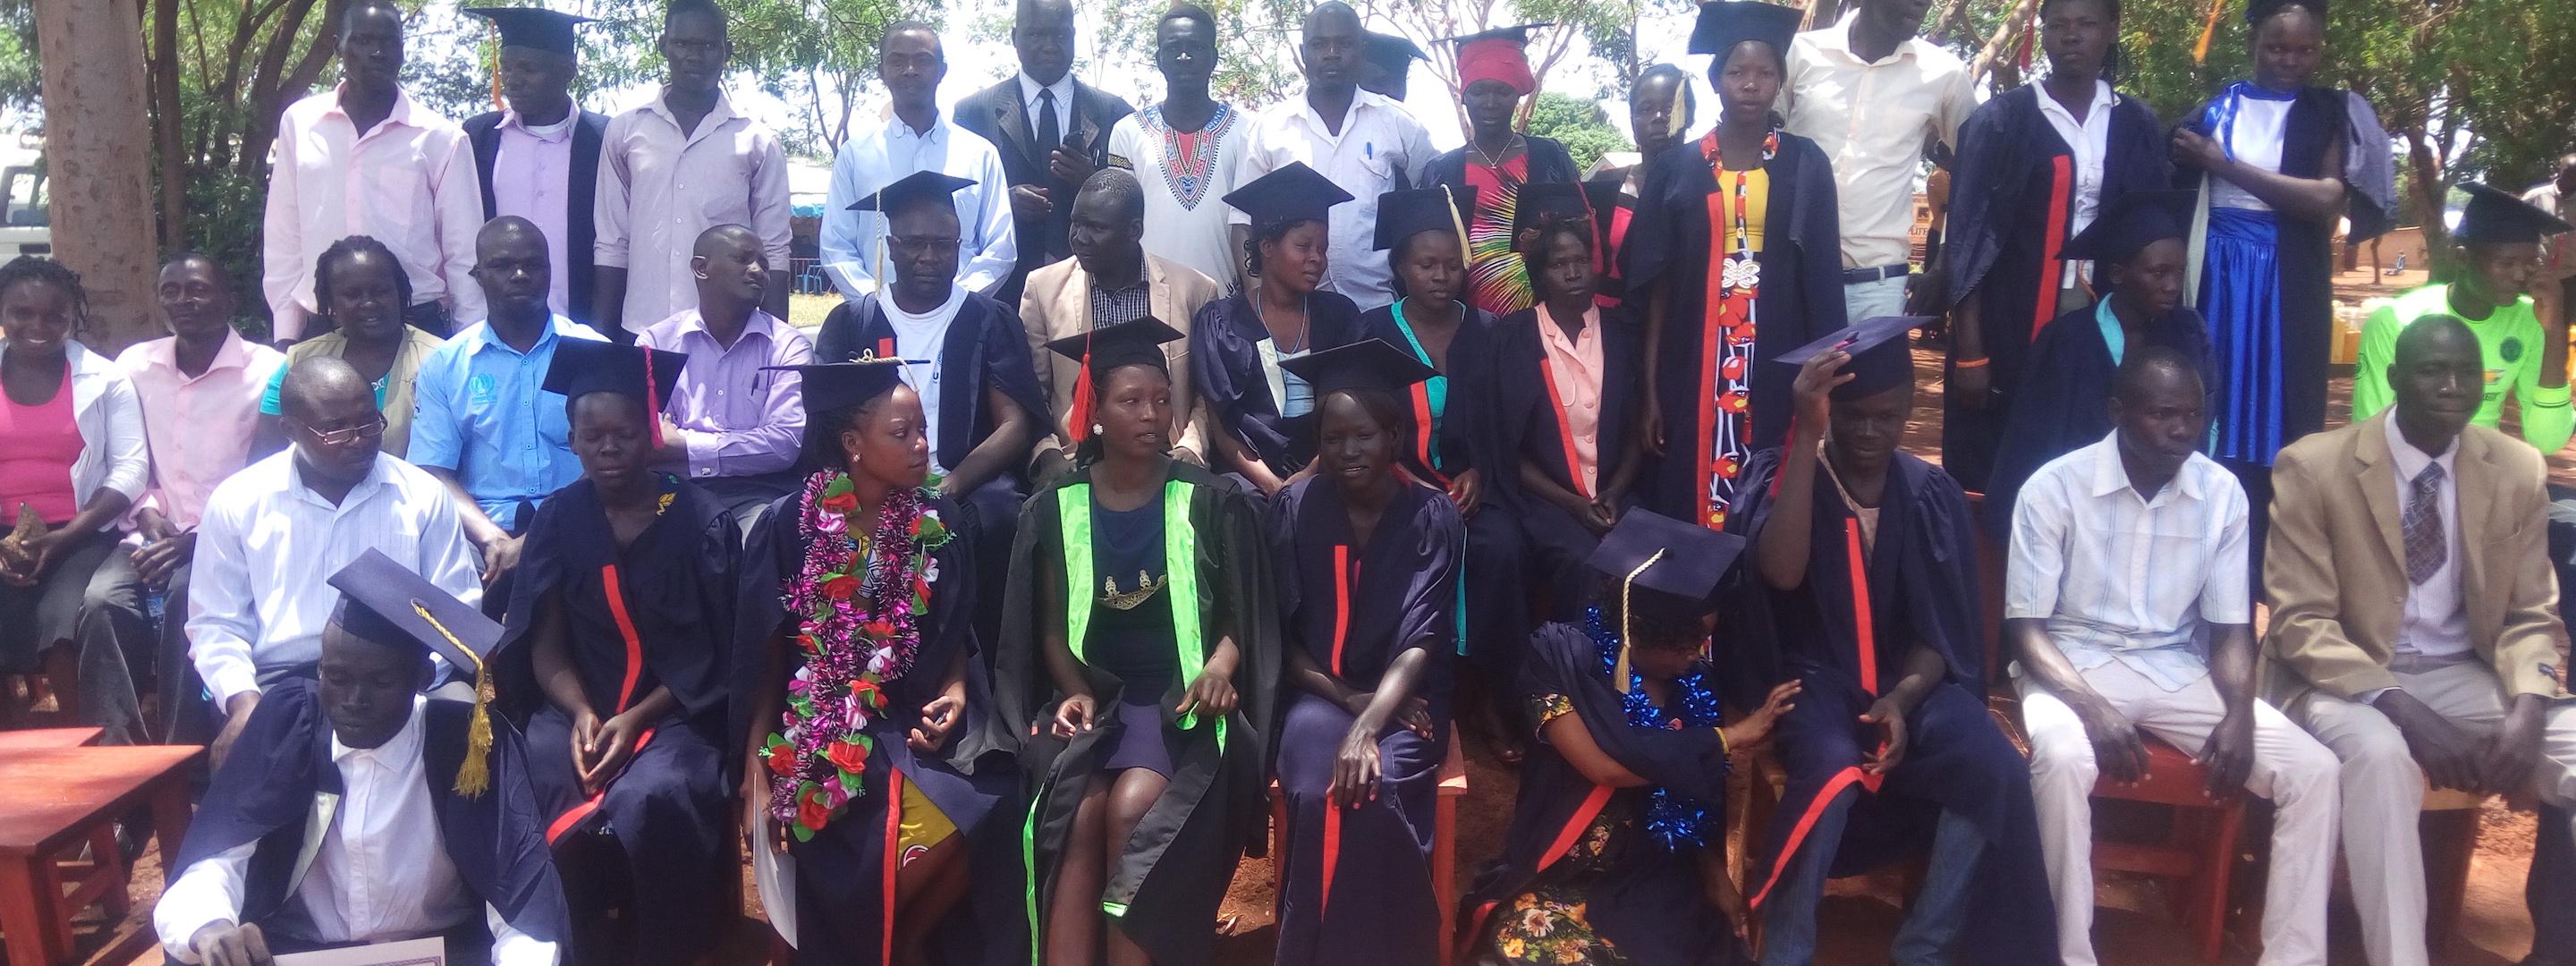 graduation in kiryandongo refugee settlement